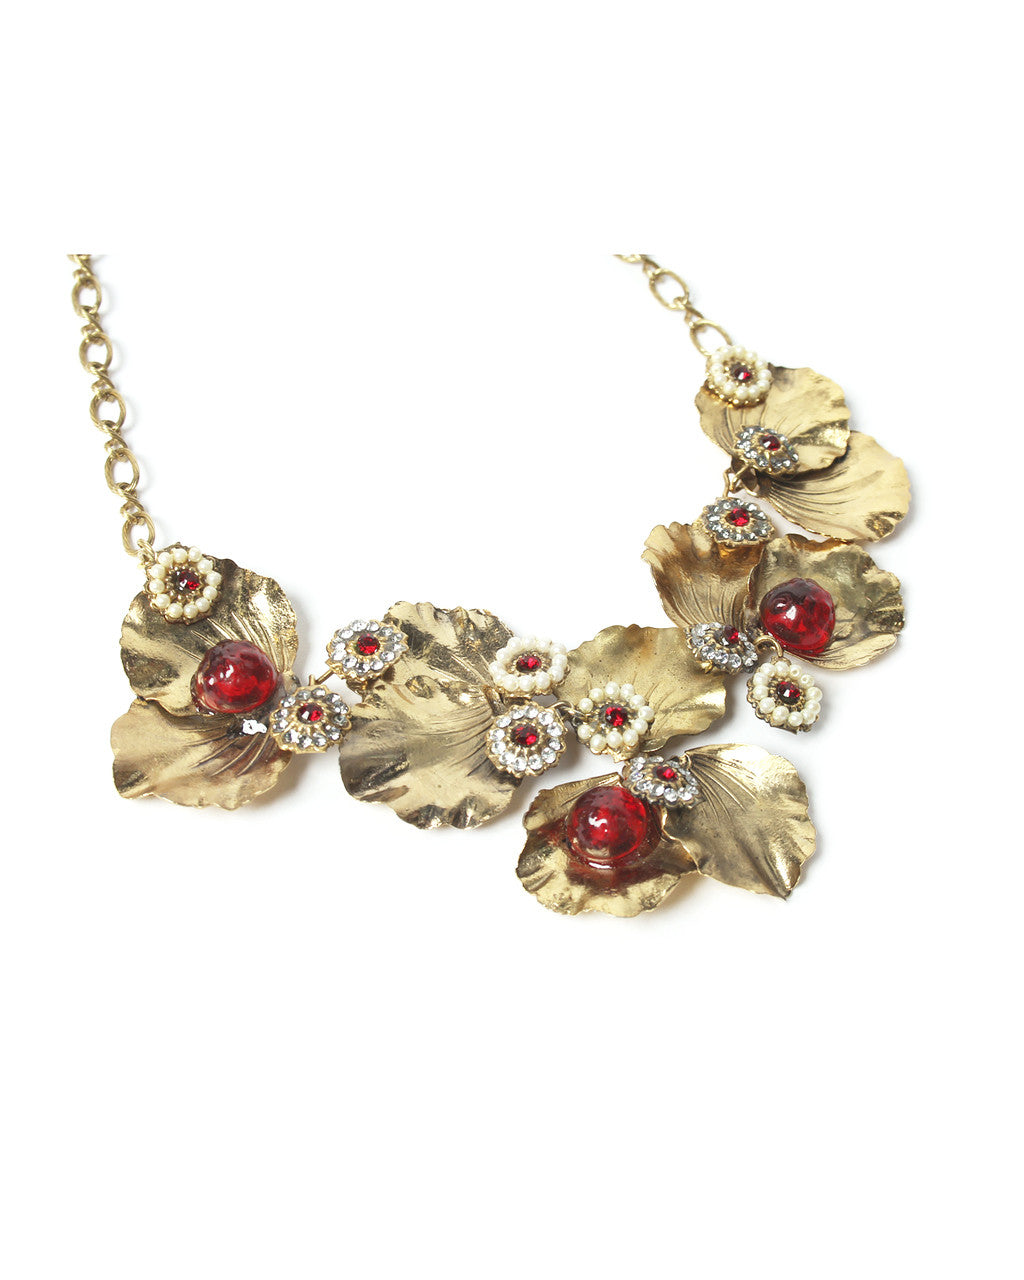 Ornella Bijoux 1980s Gold Tone Leaf Bib Necklace with Ruby